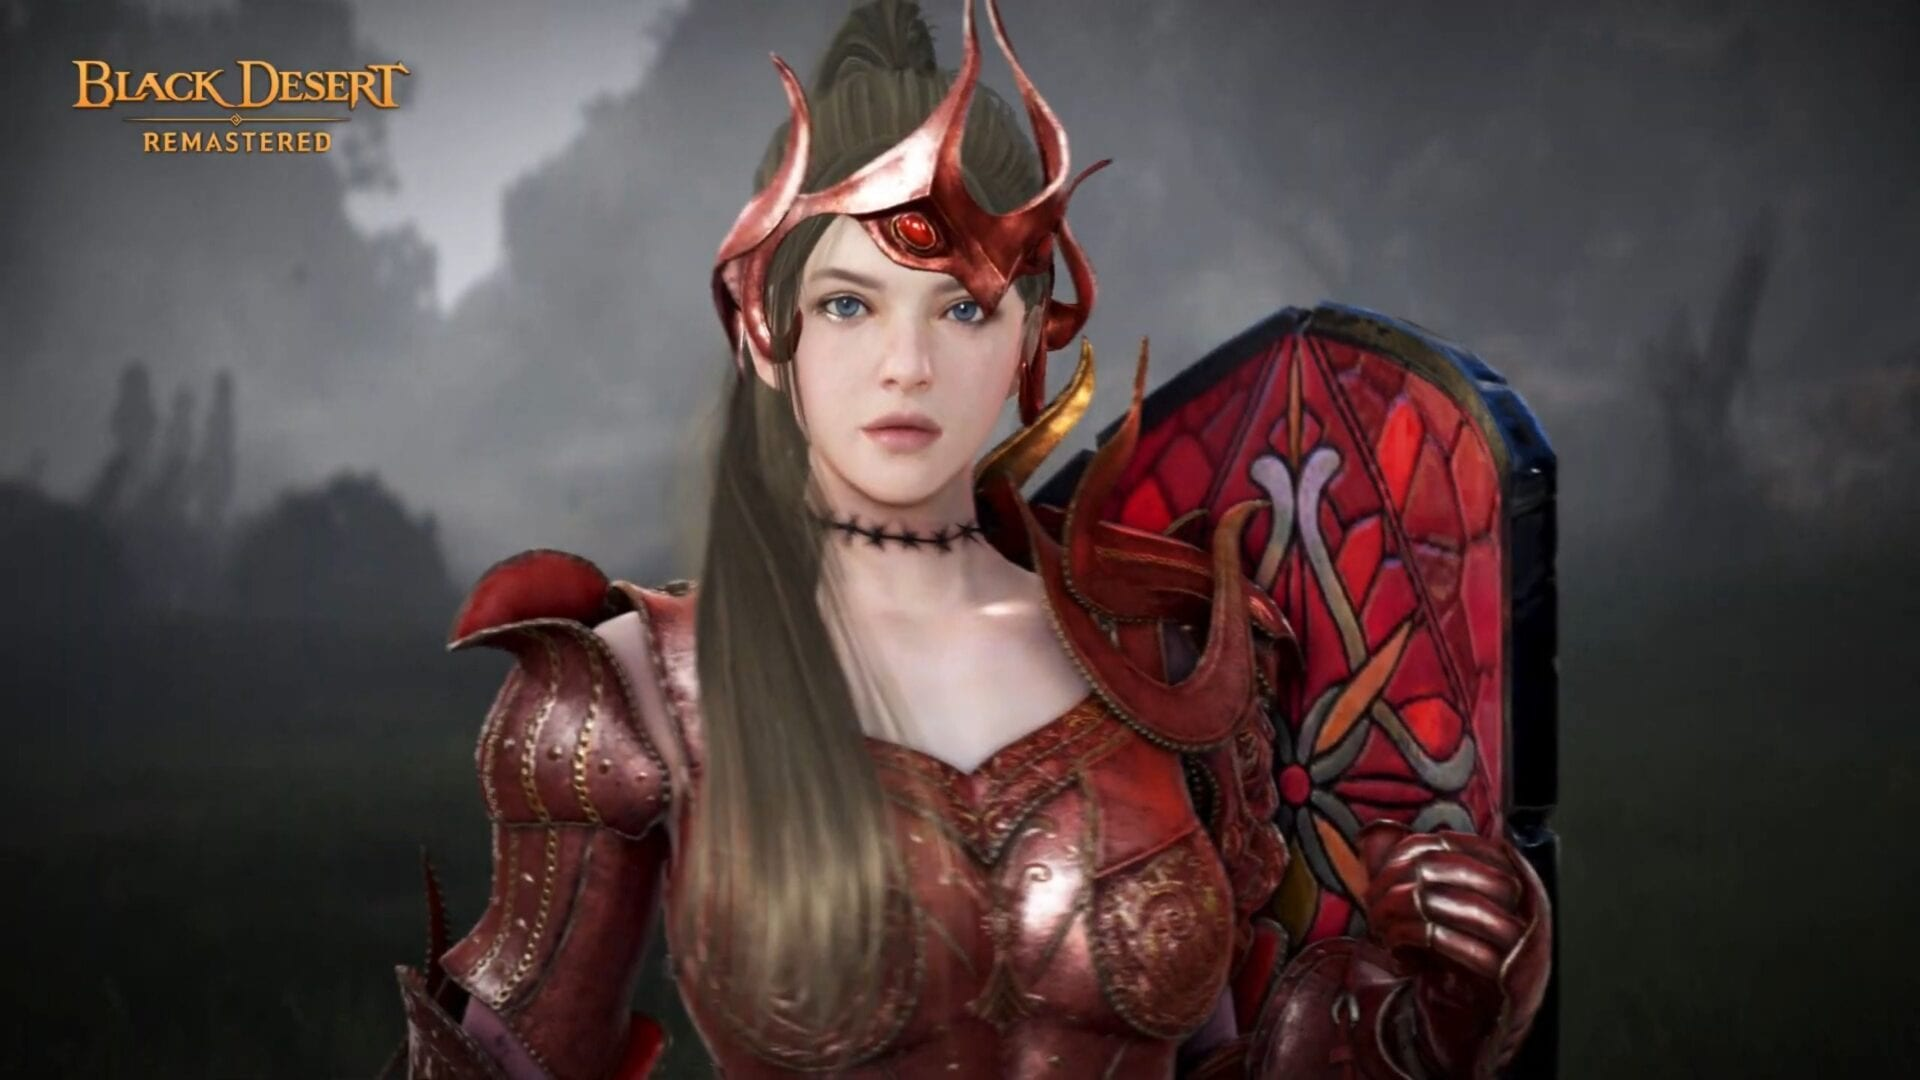 New Black Desert Trailer Reveals Nova Awakening and Succession in Motion 1